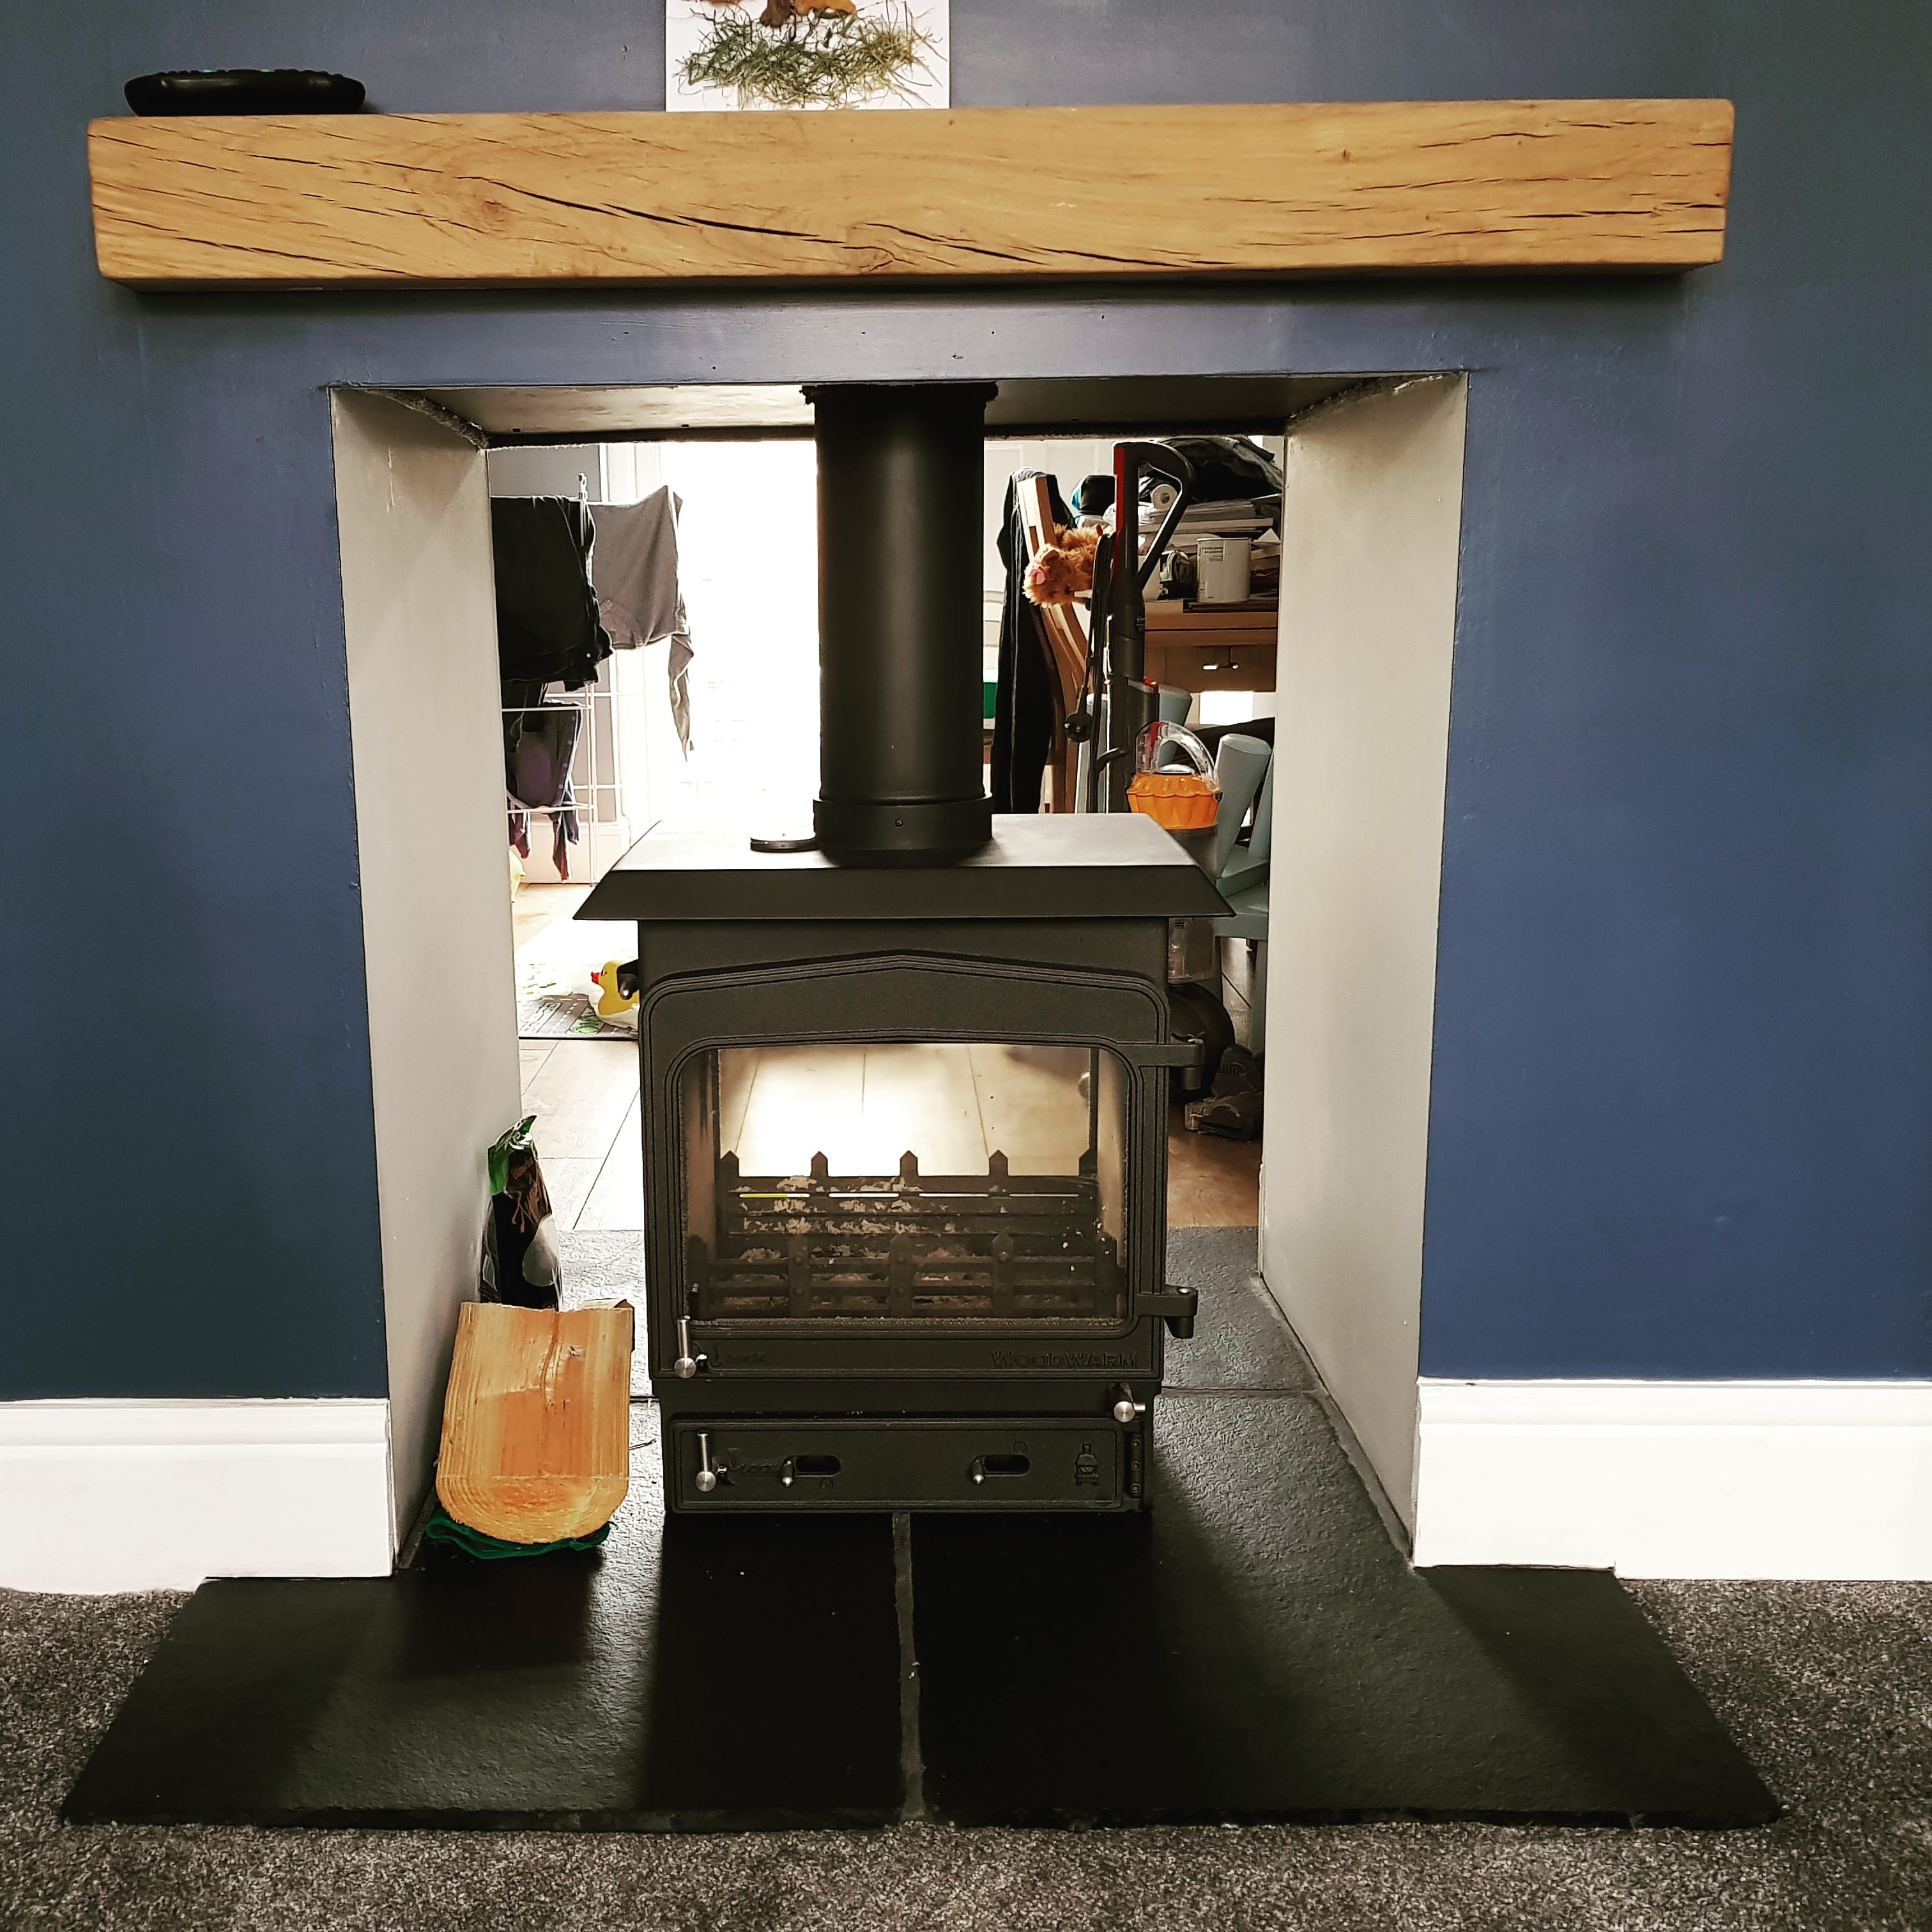 free standiong stove installation